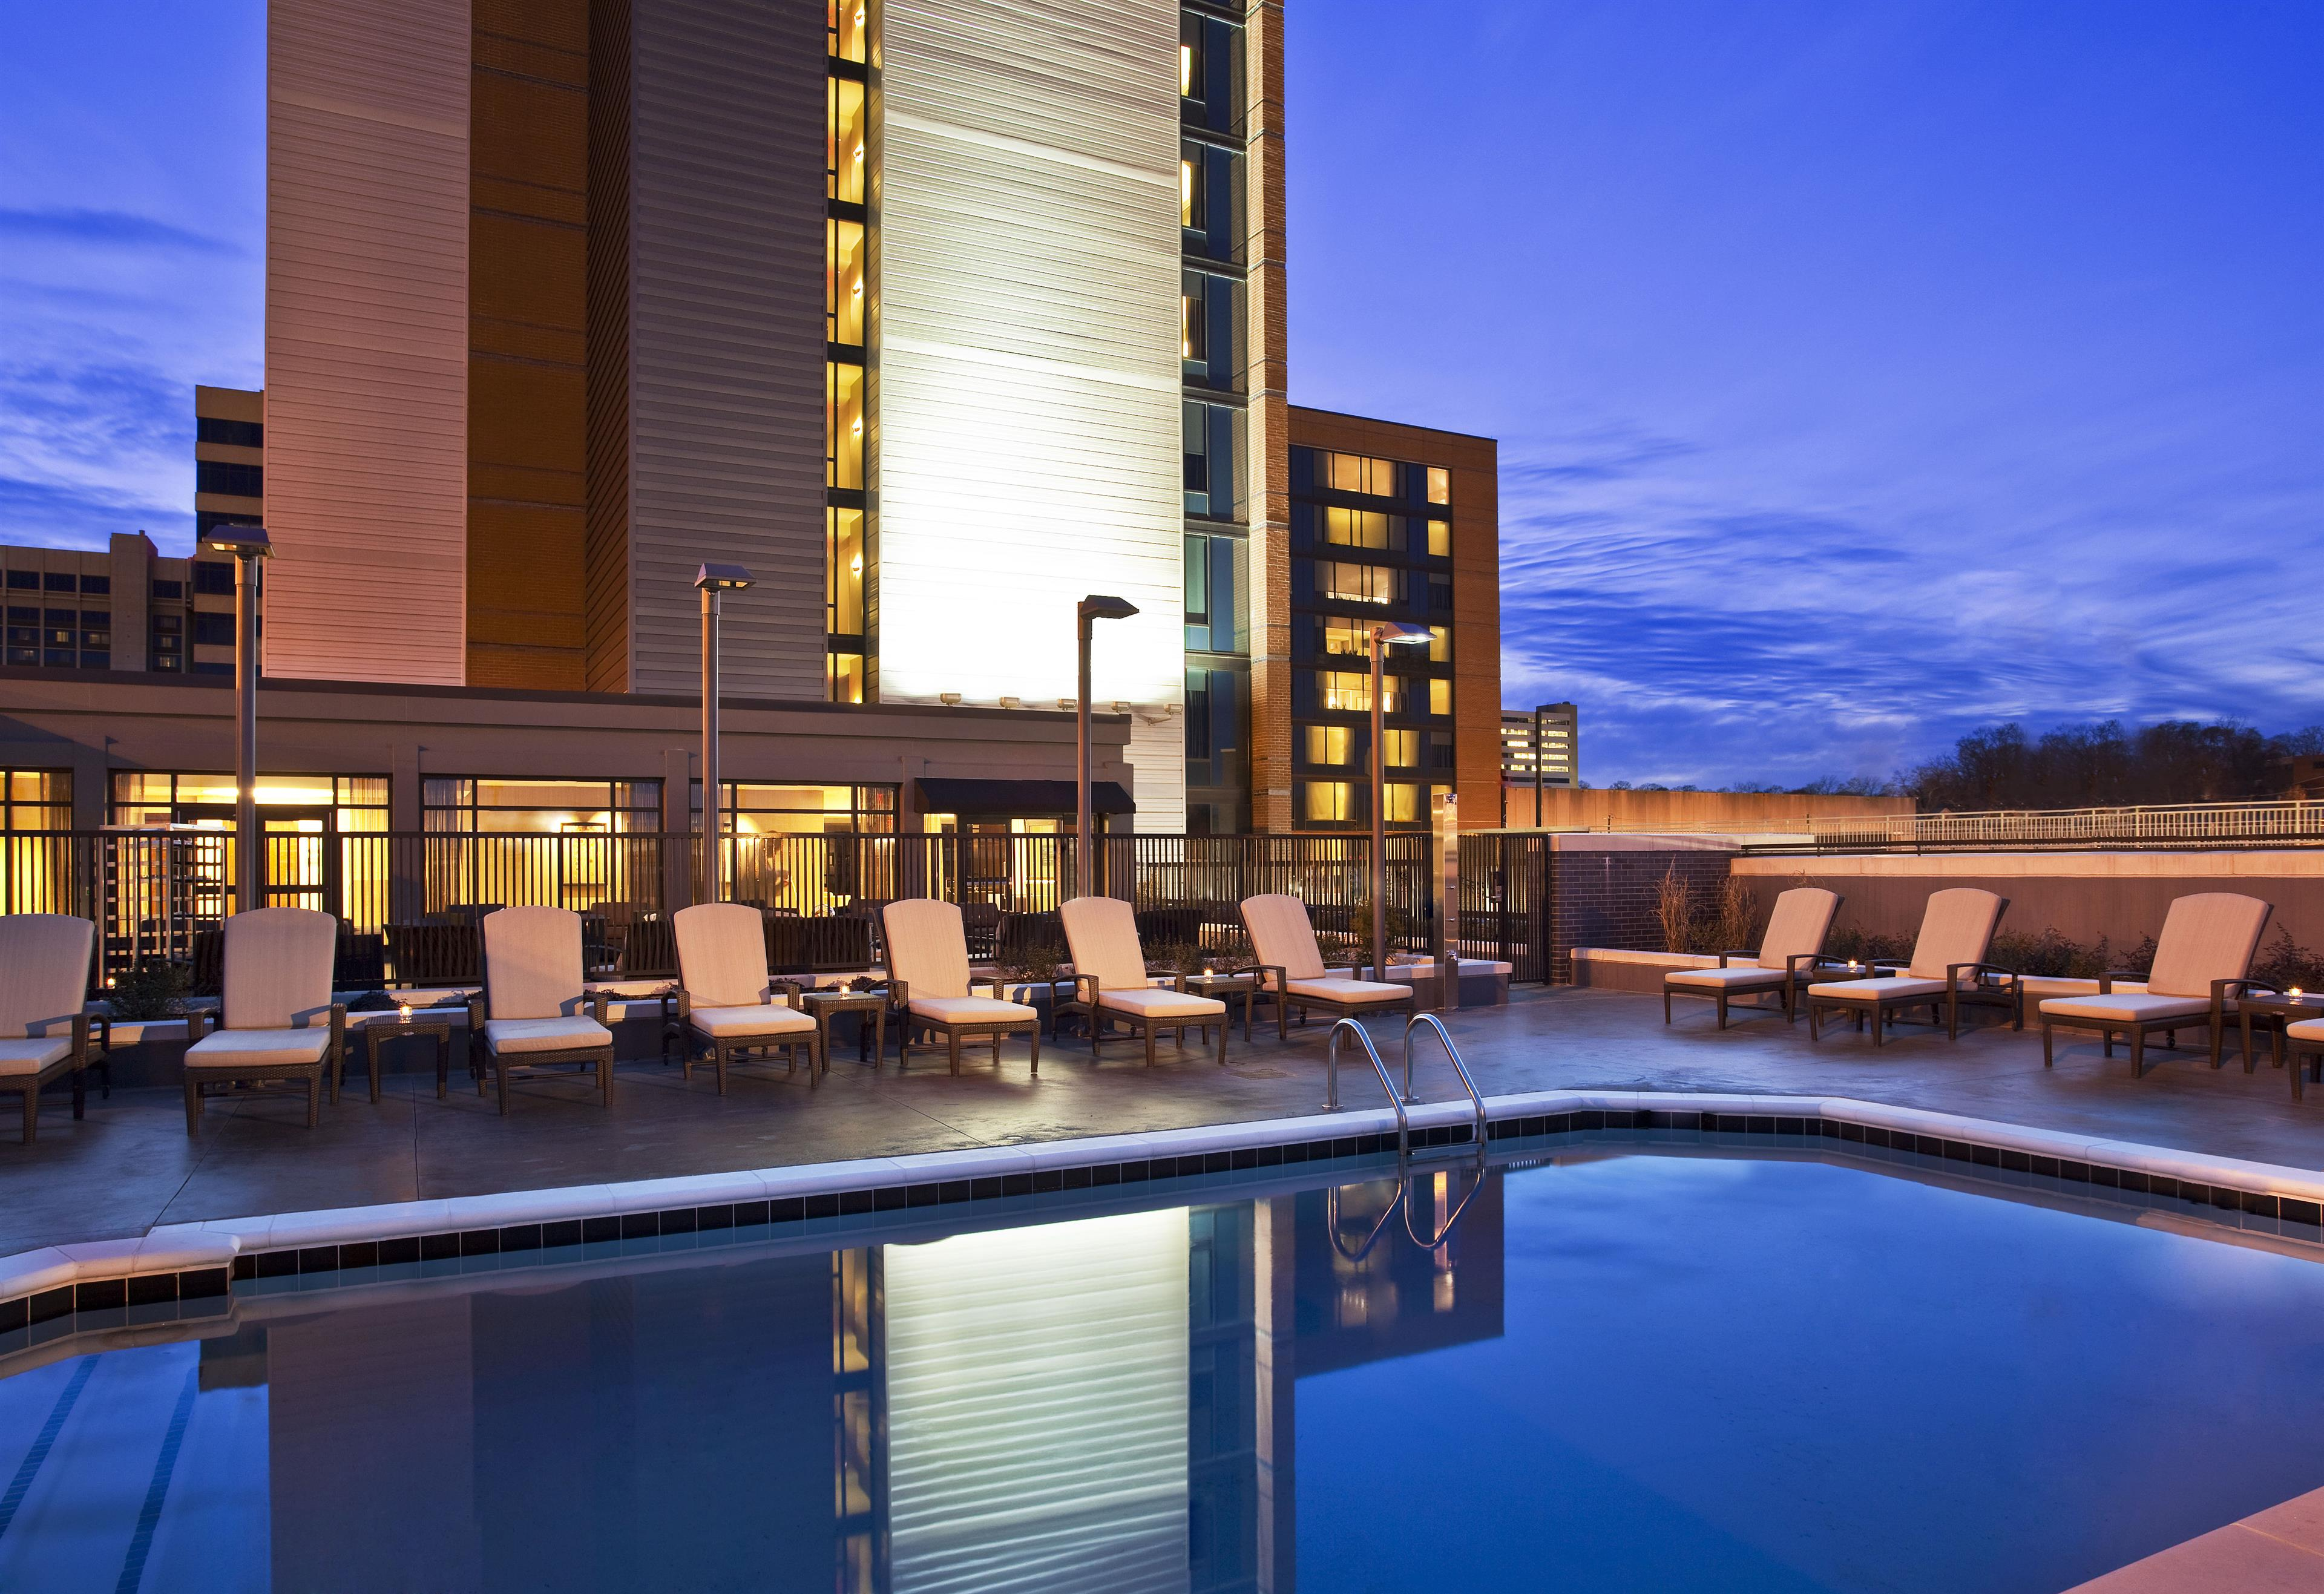 The westin birmingham coupons near me in birmingham 8coupons for Craft stores birmingham al